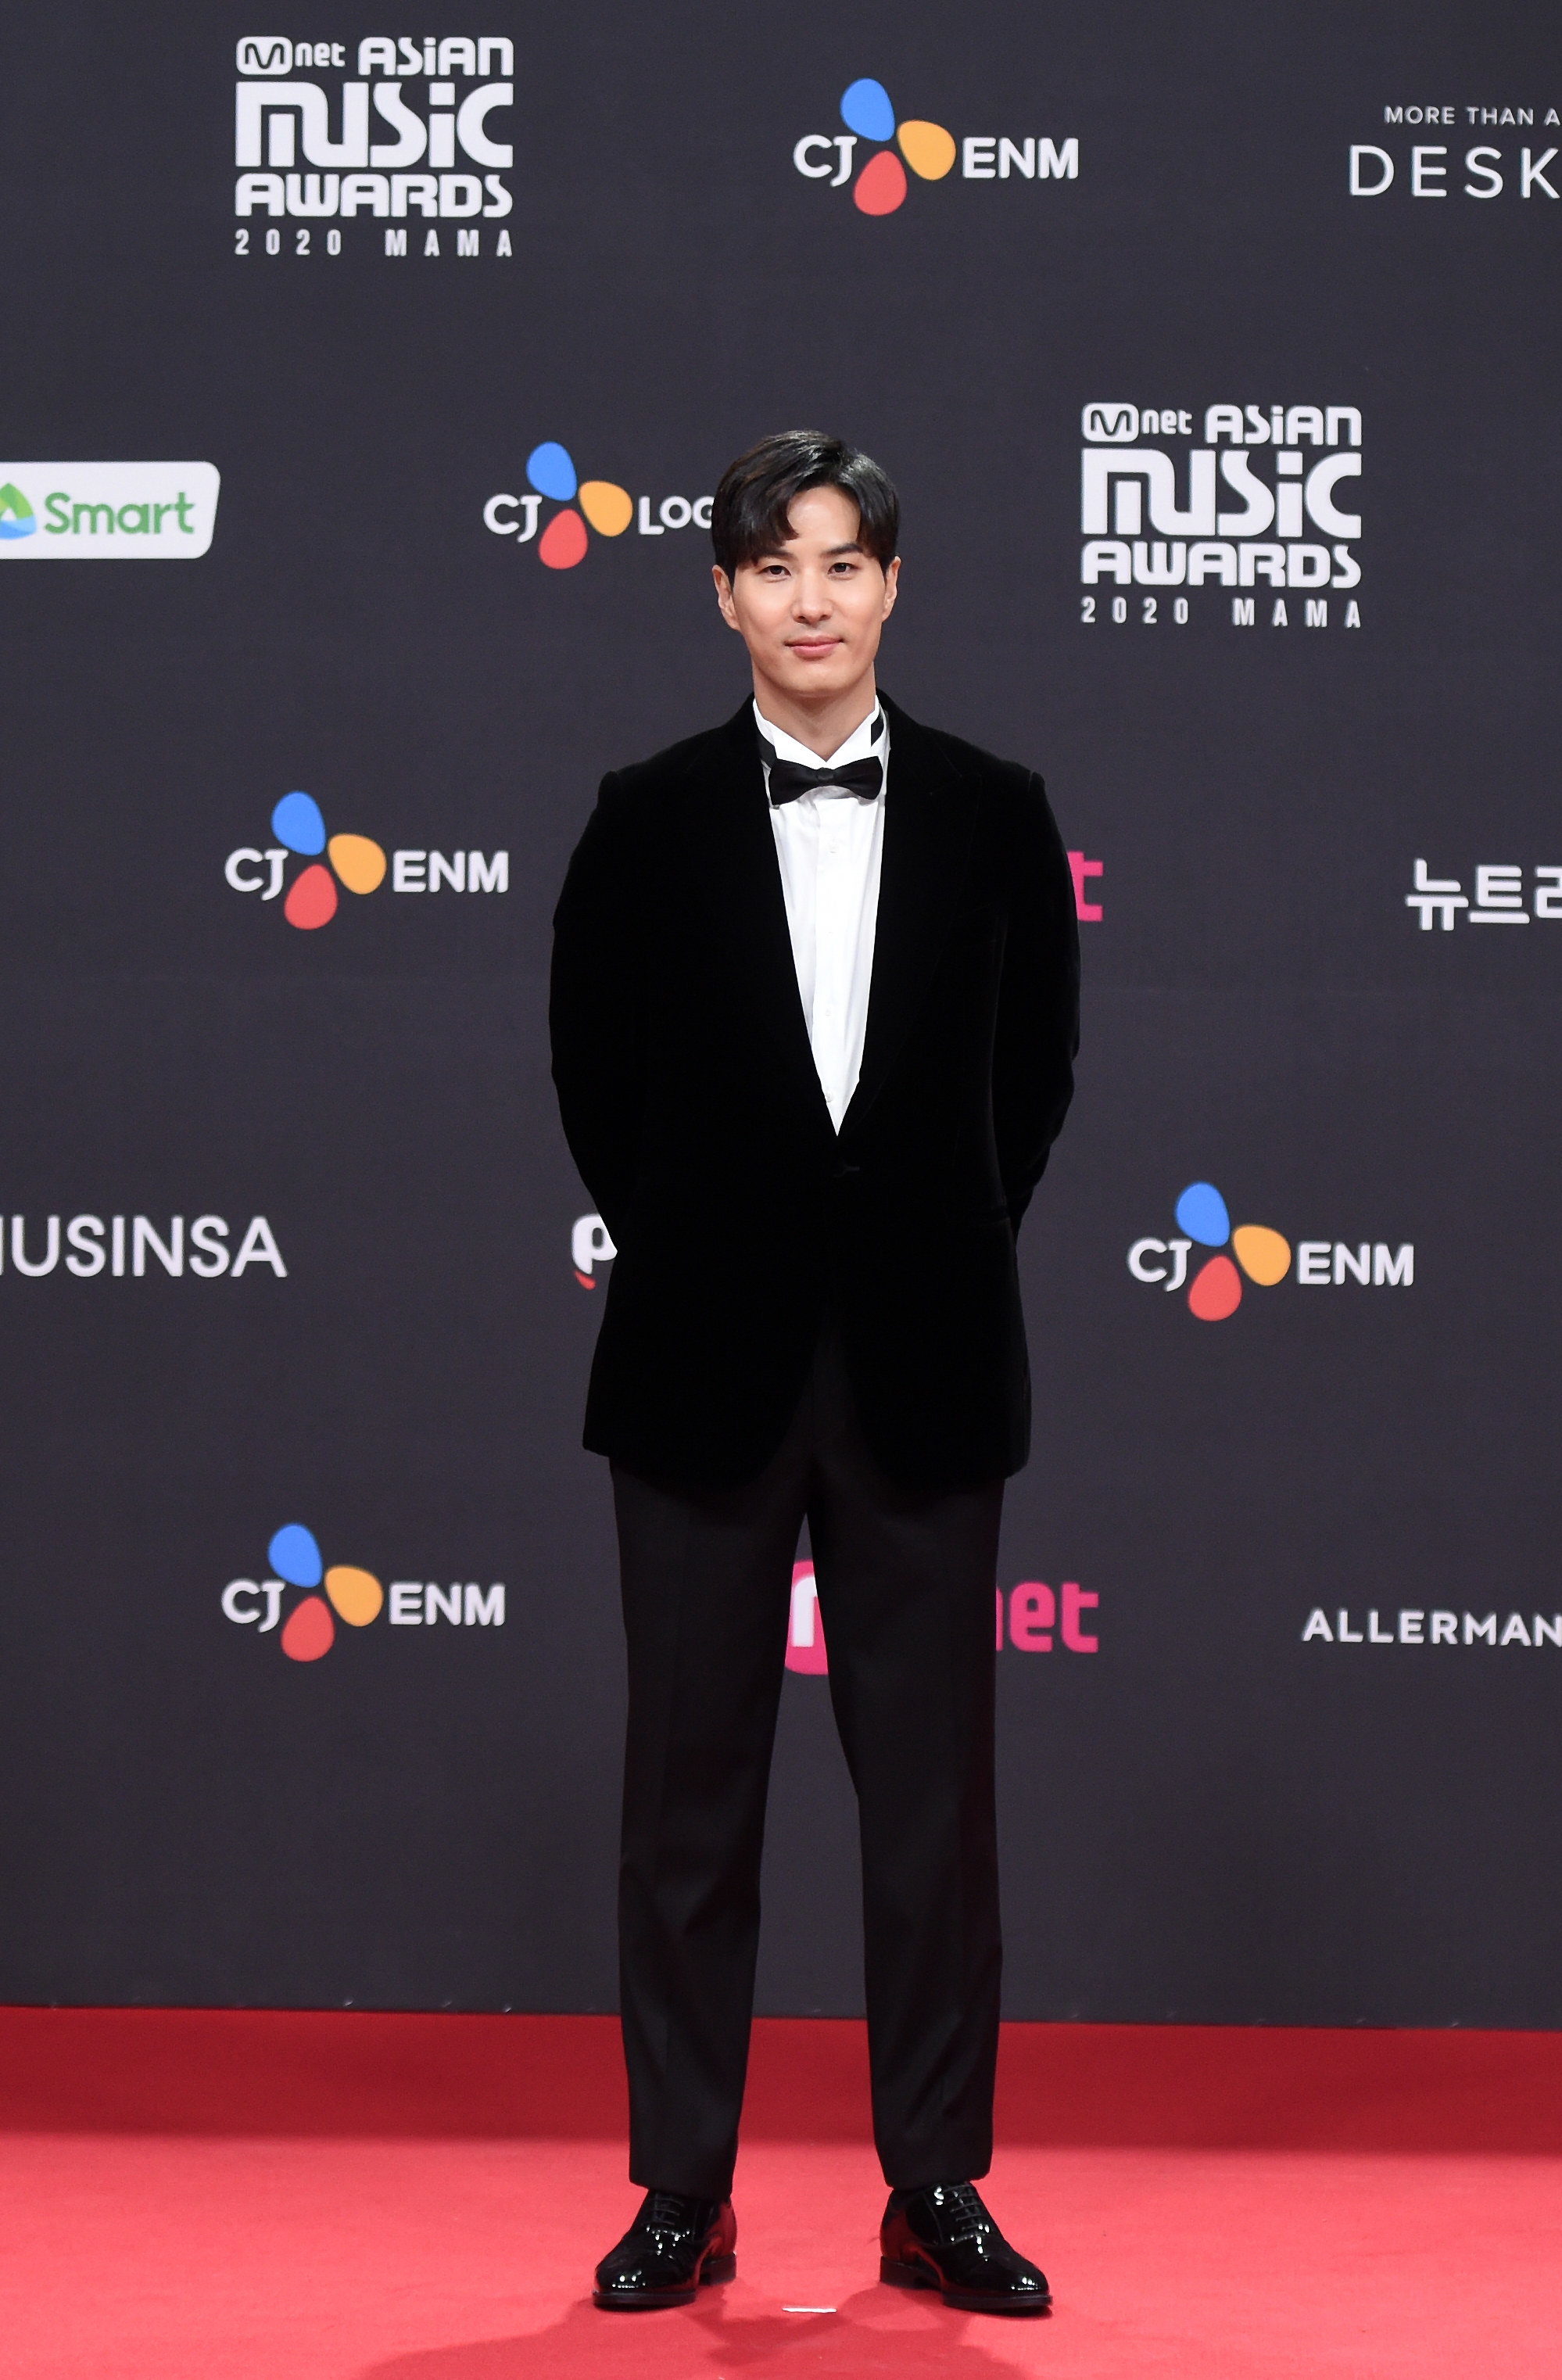 Kim Ji Seok wears a suit and bowtie  at the 2020 Mnet Asian Music Awards